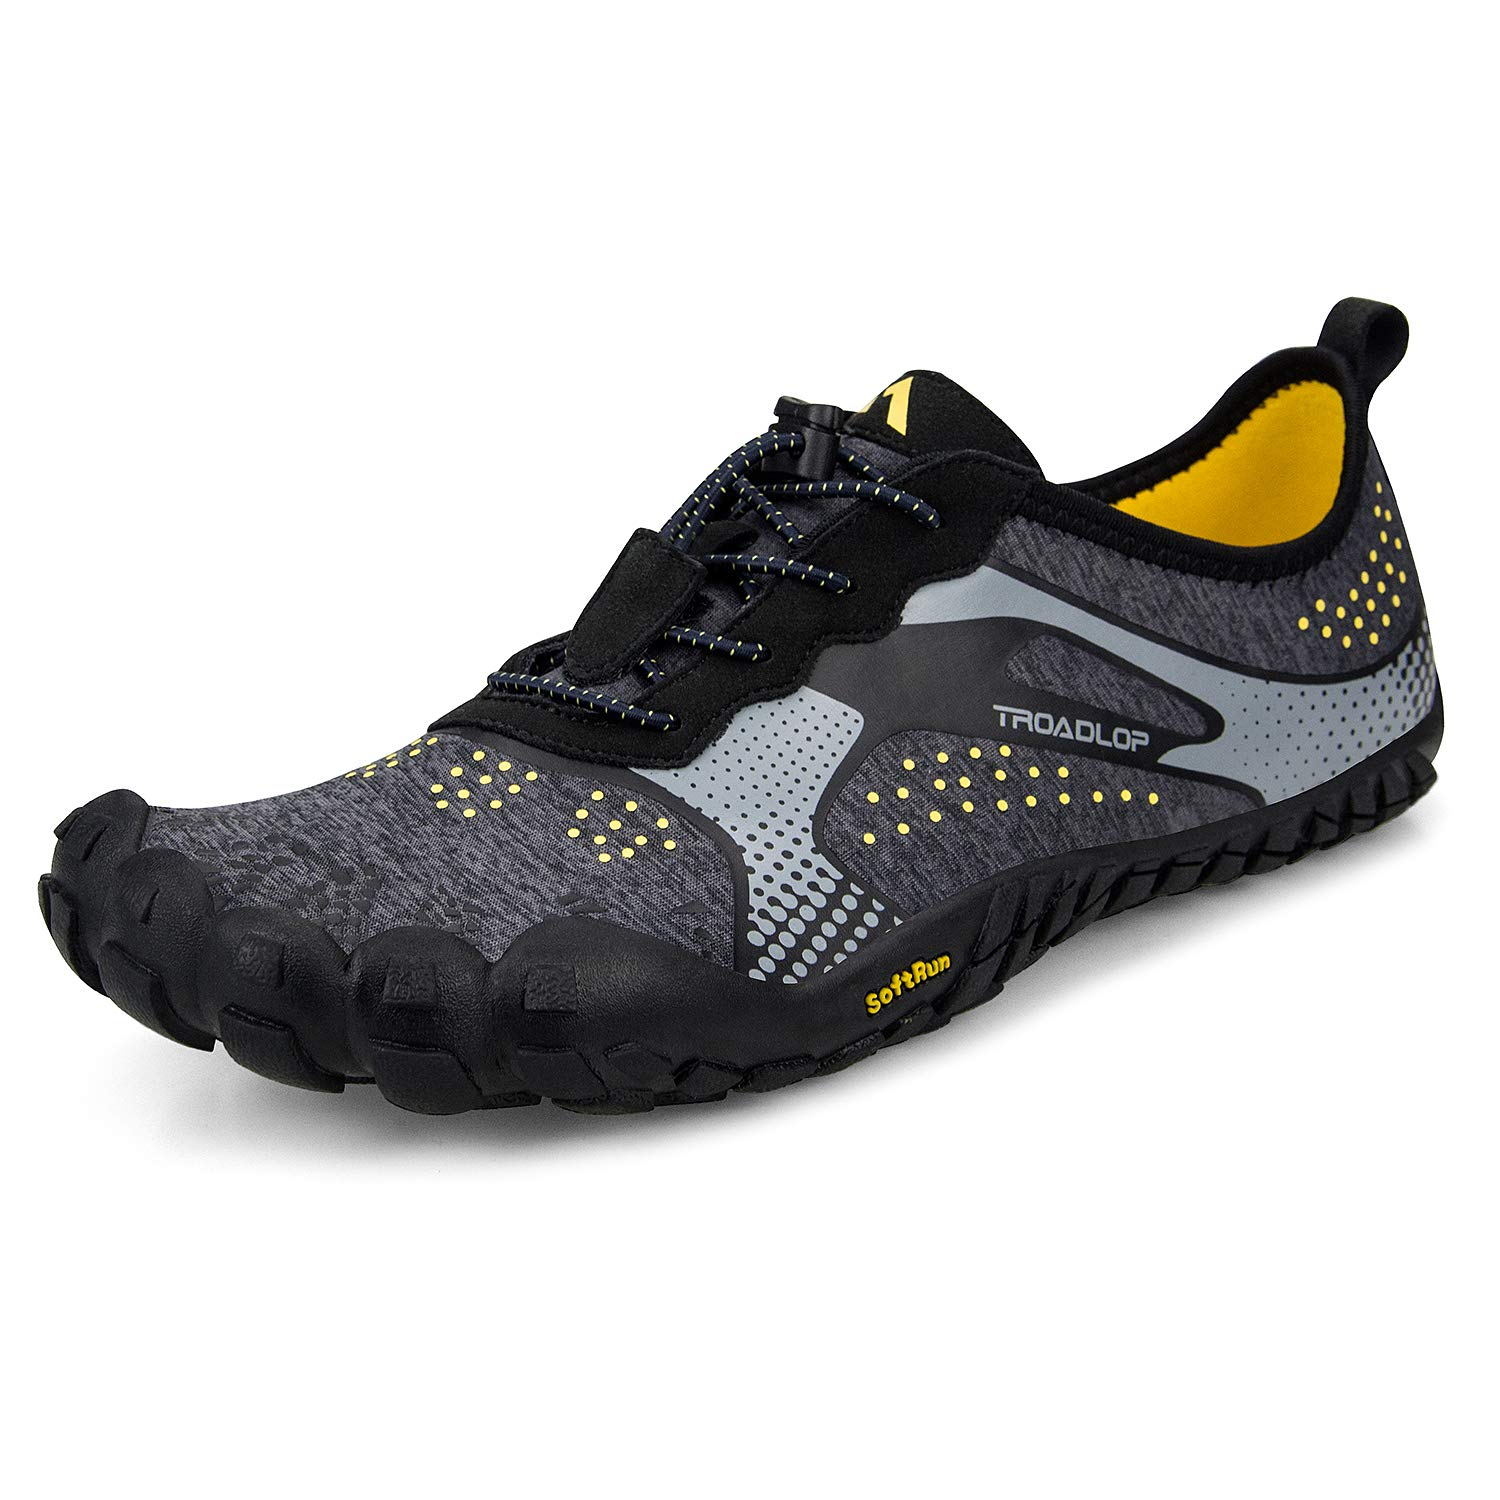 03872463c09 Troadlop Men s Trail Running Shoes Lightweight Breathable Non Slip Barefoot  Sneakers Black Grey Size 8